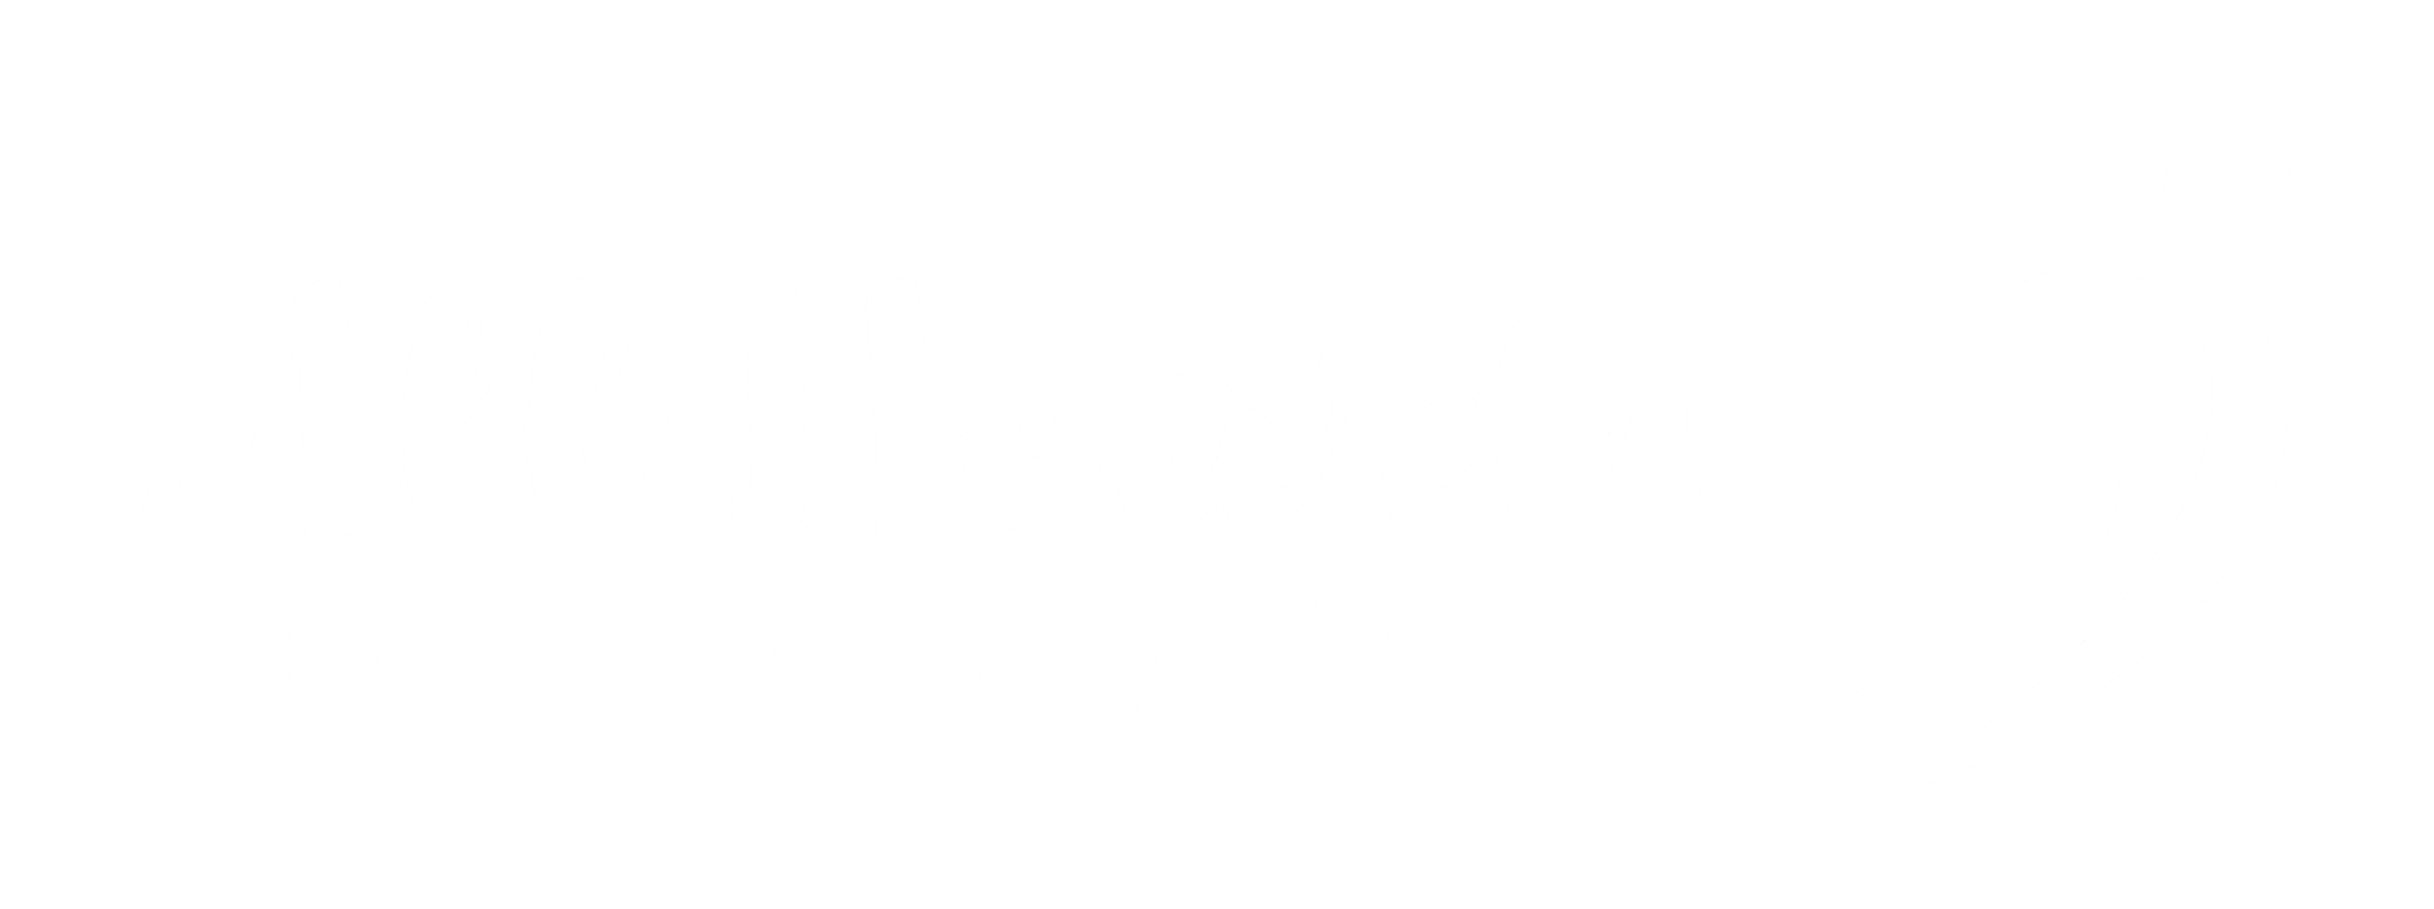 All Heart Home Care Logo San Diego Senior Caregivers